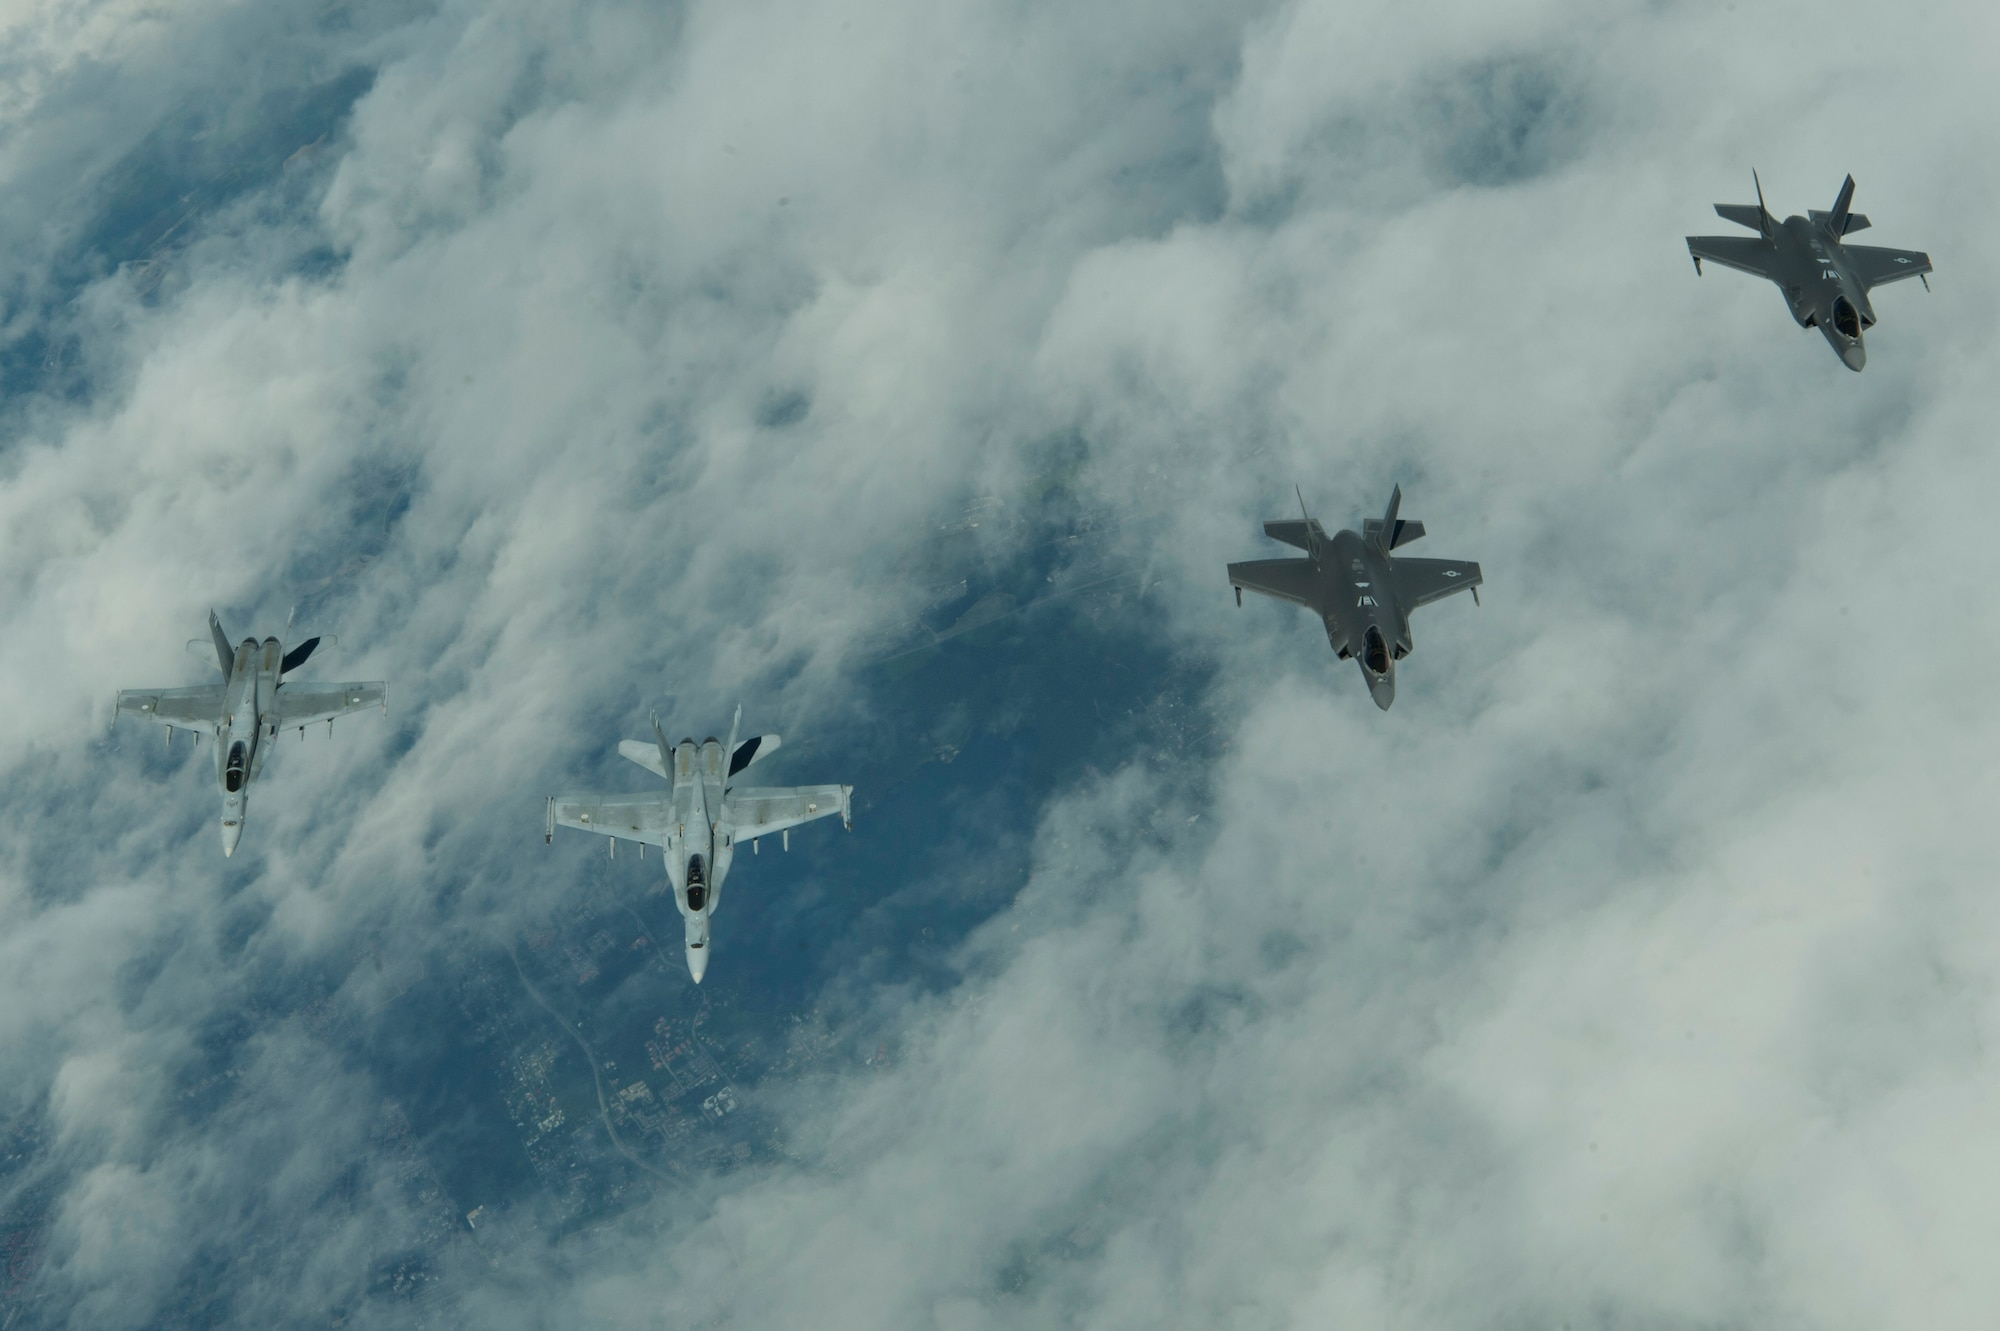 These aircraft are in Europe to participate in exercises and conduct training with Europe-based aircraft in support of a Theater Security Package.